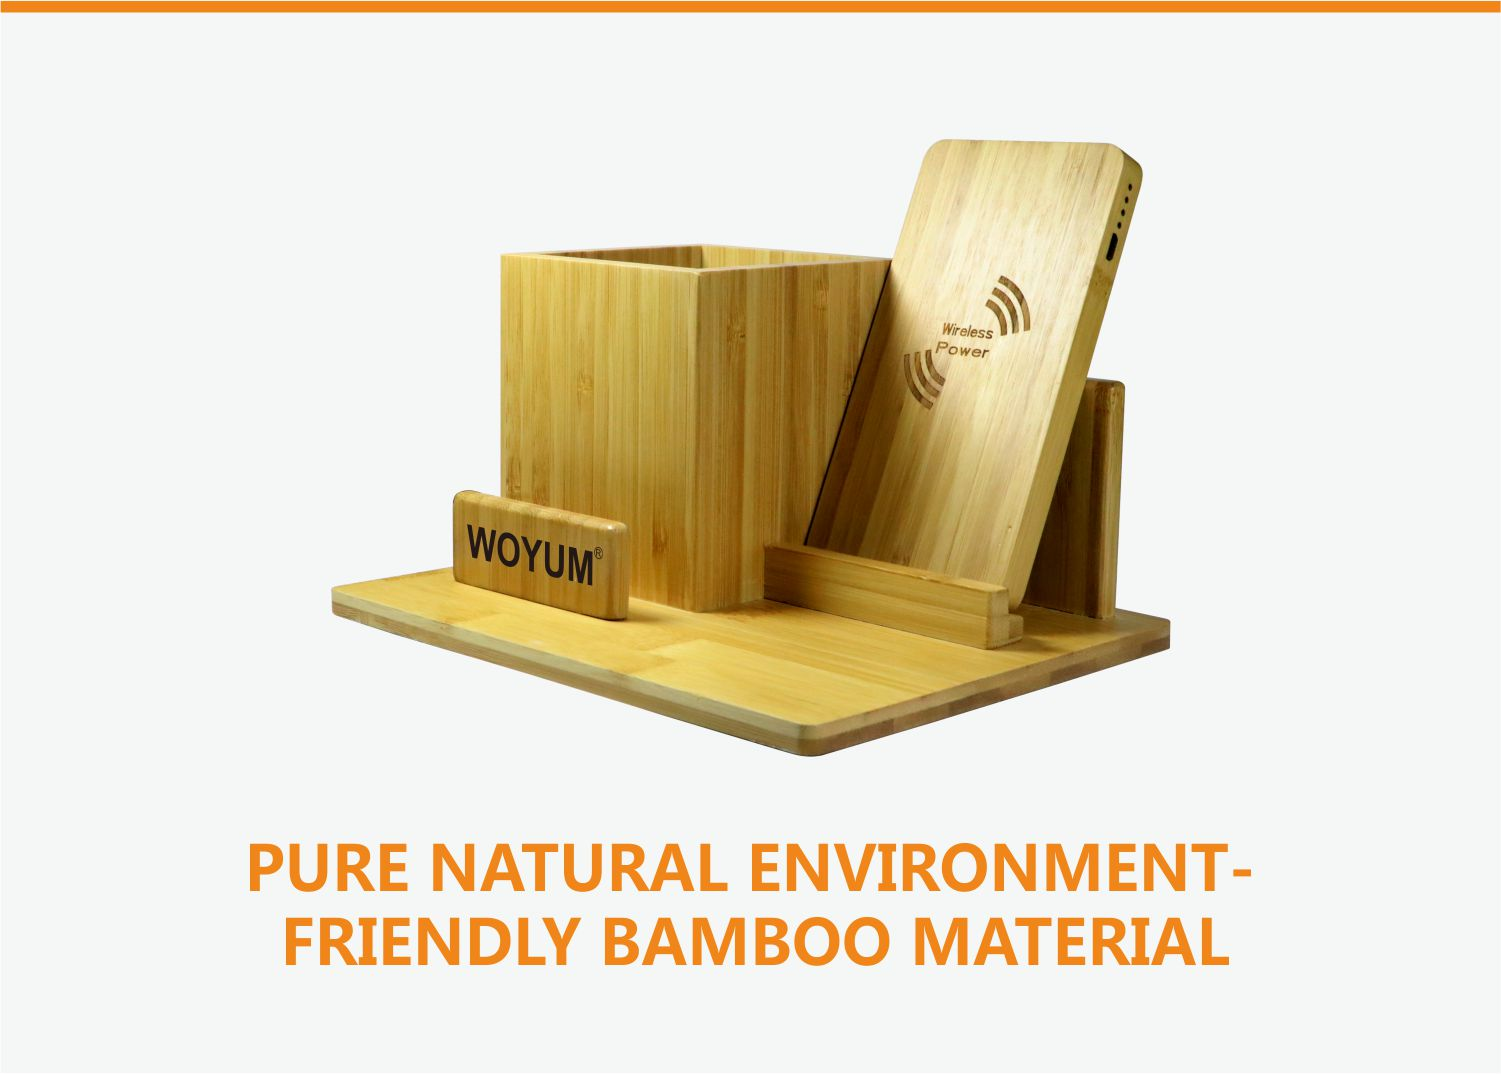 video-bamboo wood qi wireless charger wood power bank with Pen container-Woyum -img-1